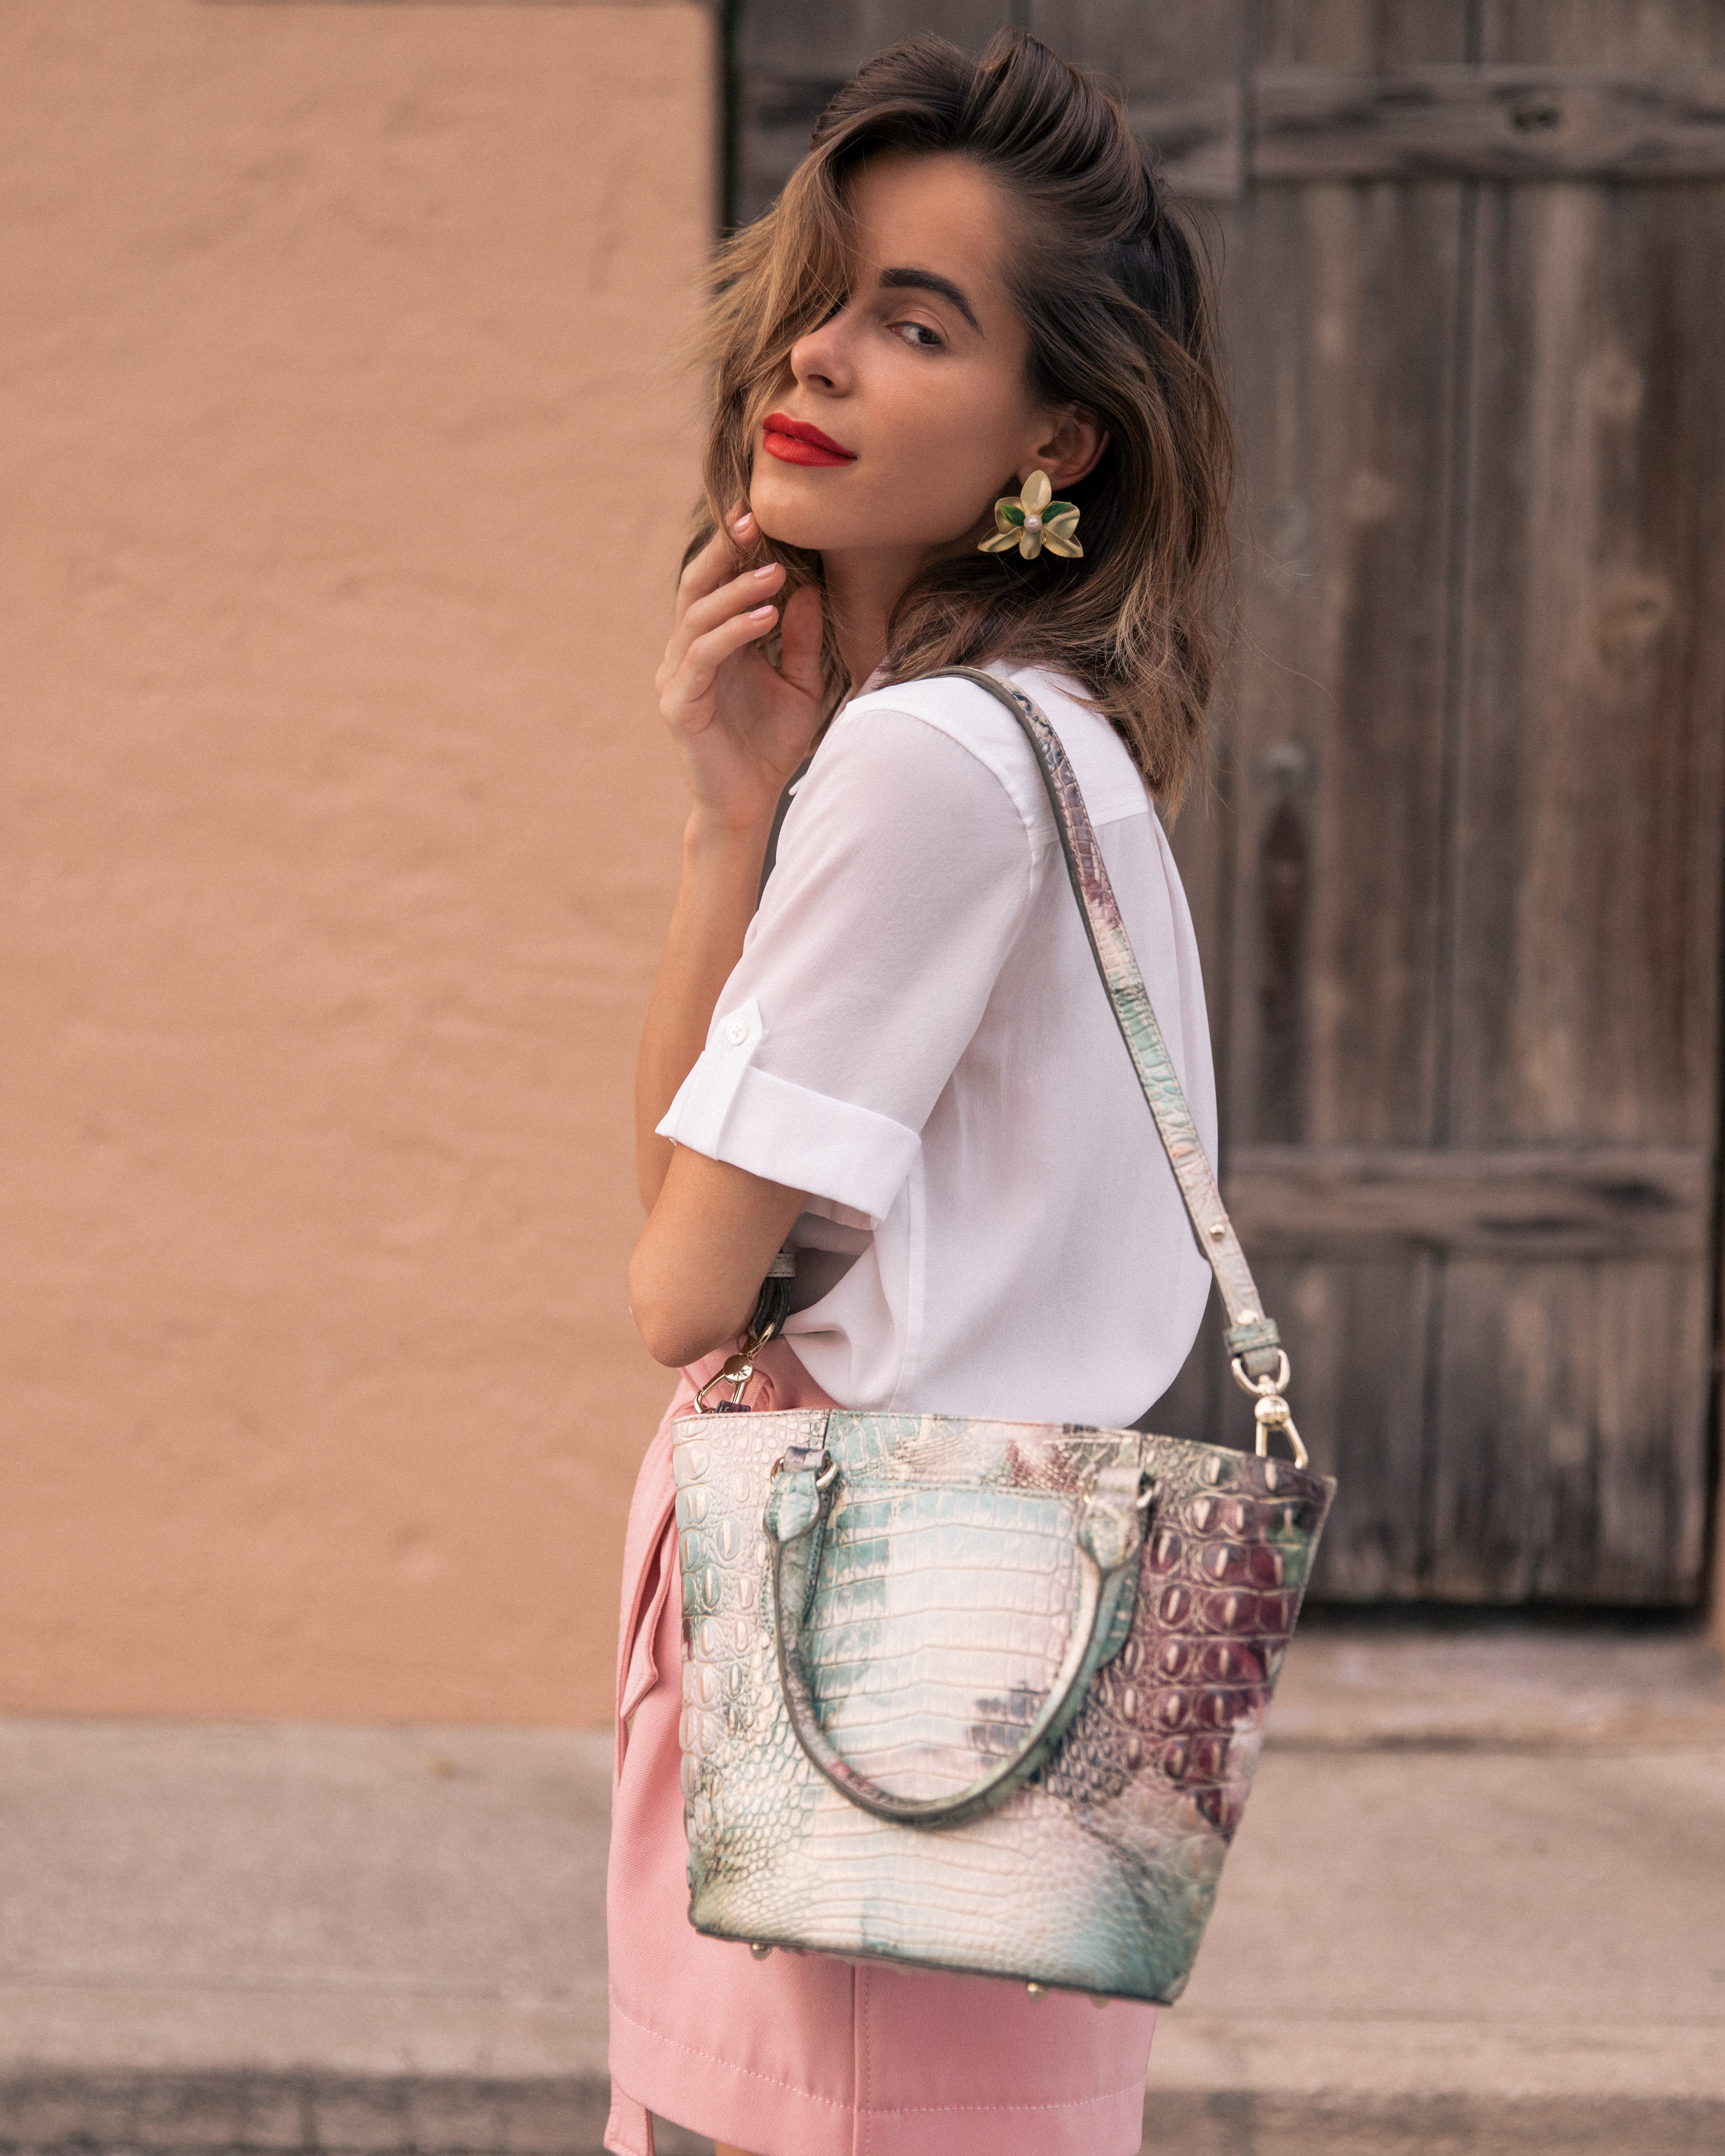 Style Blogger Stephanie Hill from The Style Bungalow featuring her Most Used Handbag Brand of 2019